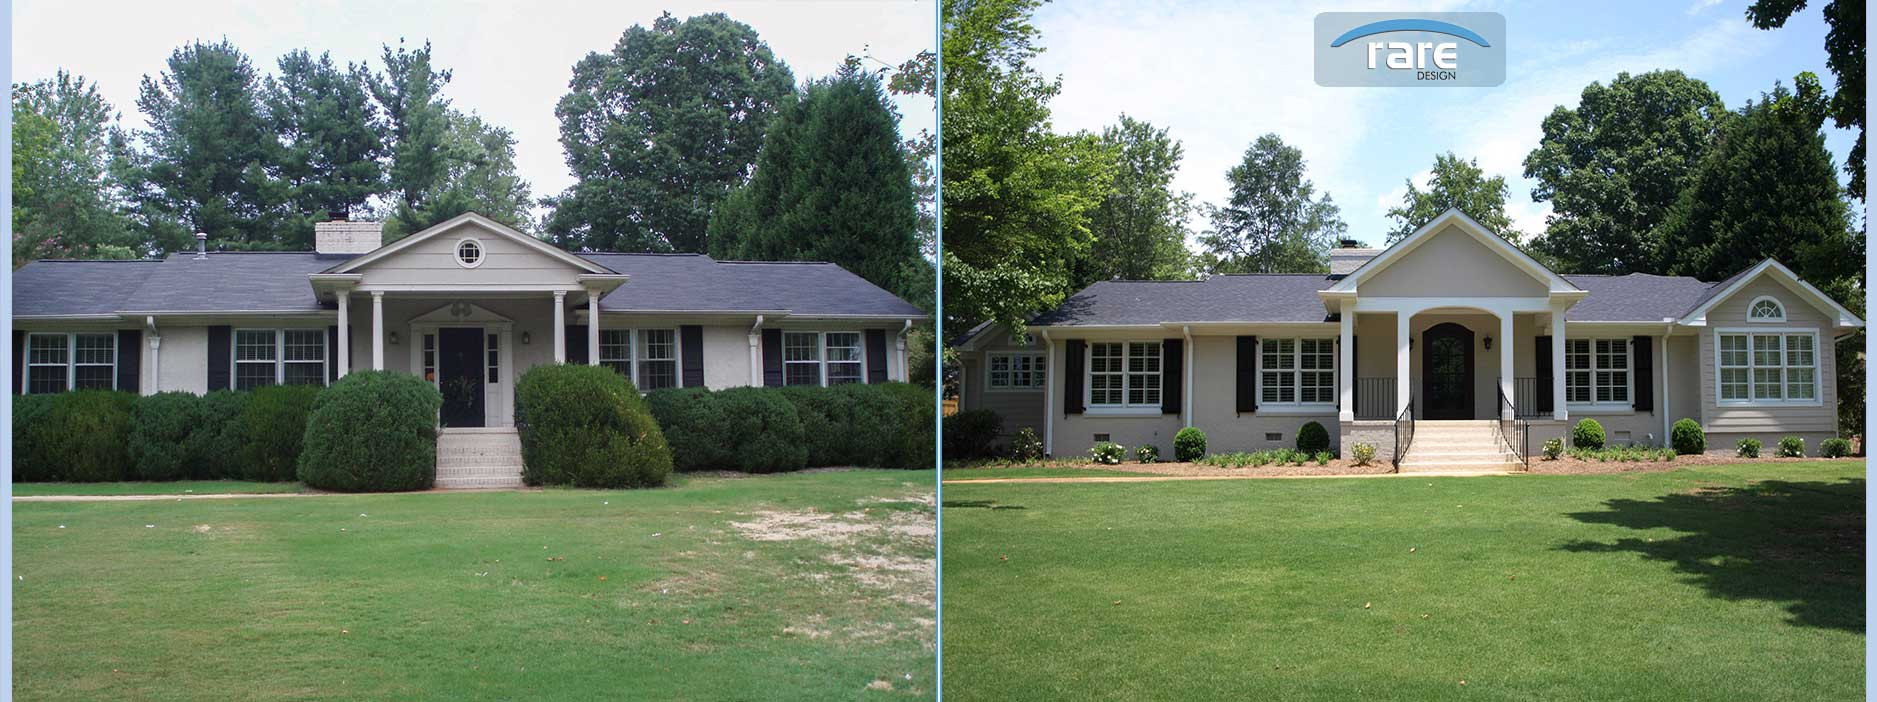 ranch style house remodel before and after home redesign Greenville Home Remodeling